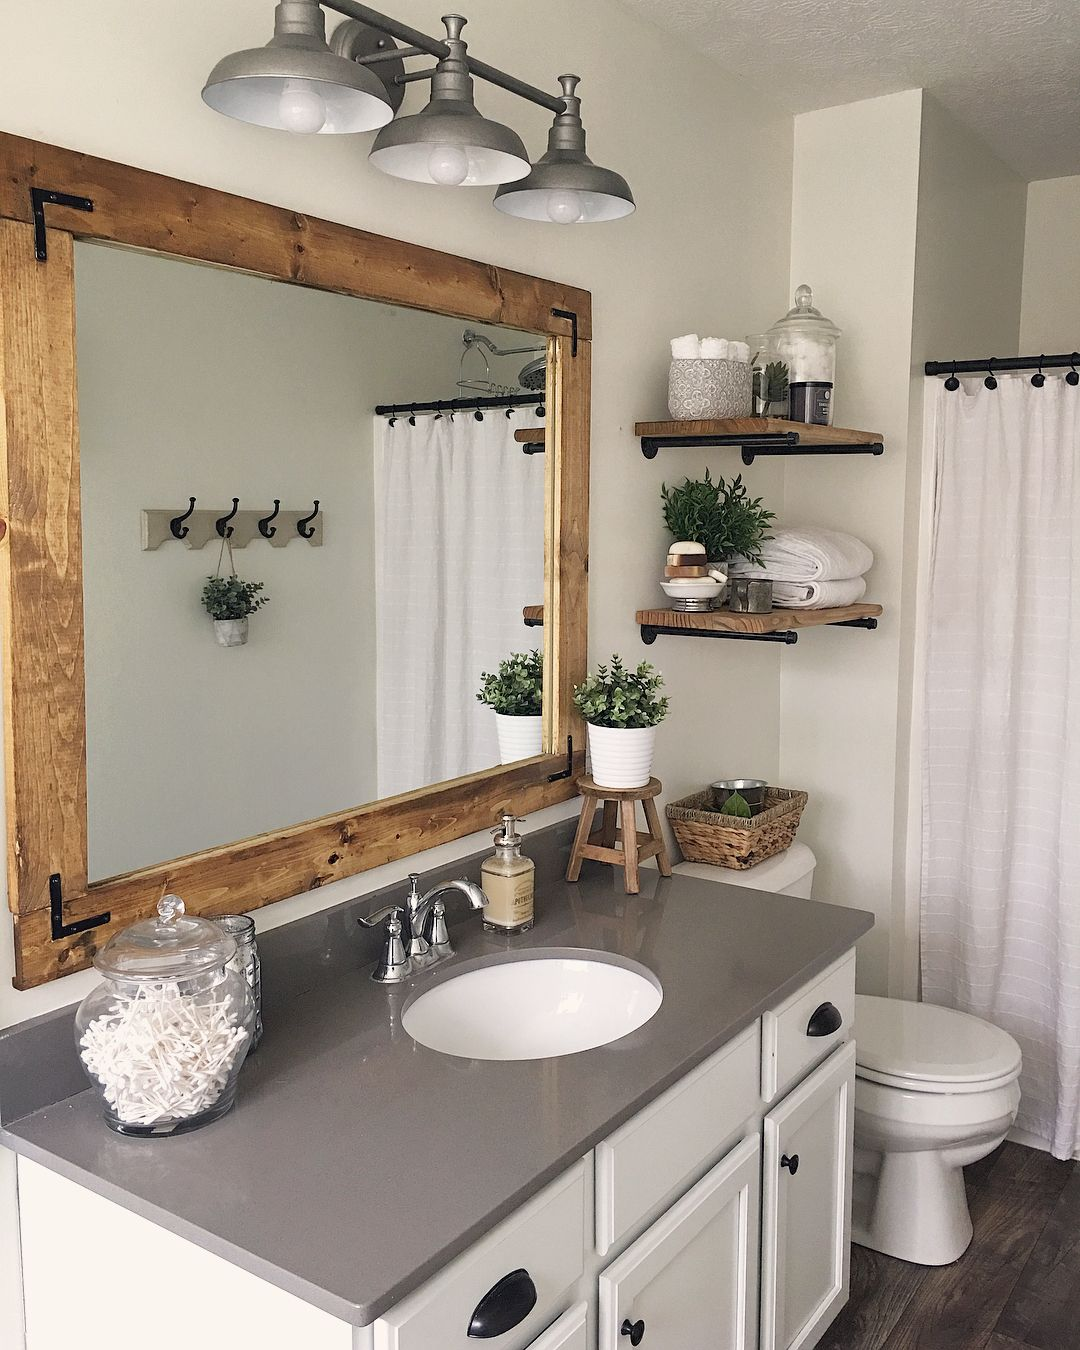 B O S T O N On Instagram A Little Before And After Master Bathroom Transformation It S Not The Biggest C Fancy Bathroom Simple Bathroom Restroom Decor